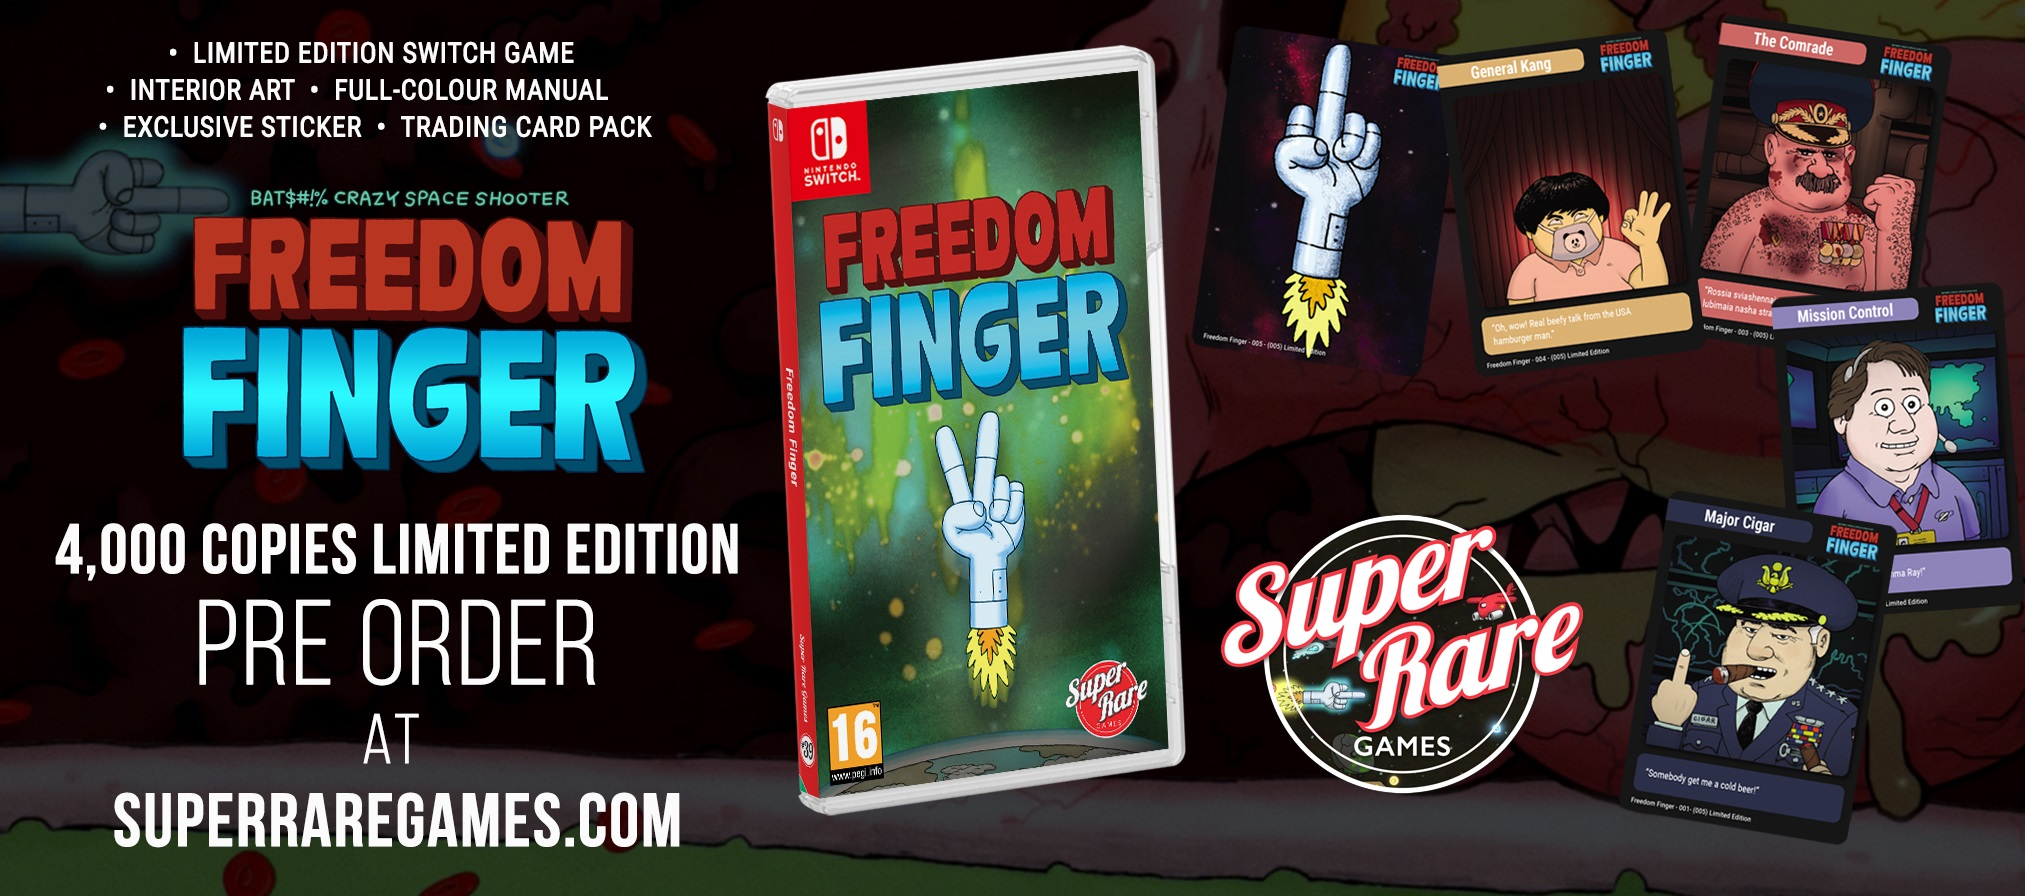 Contest Freedom Finger Super Rare Games win Switch